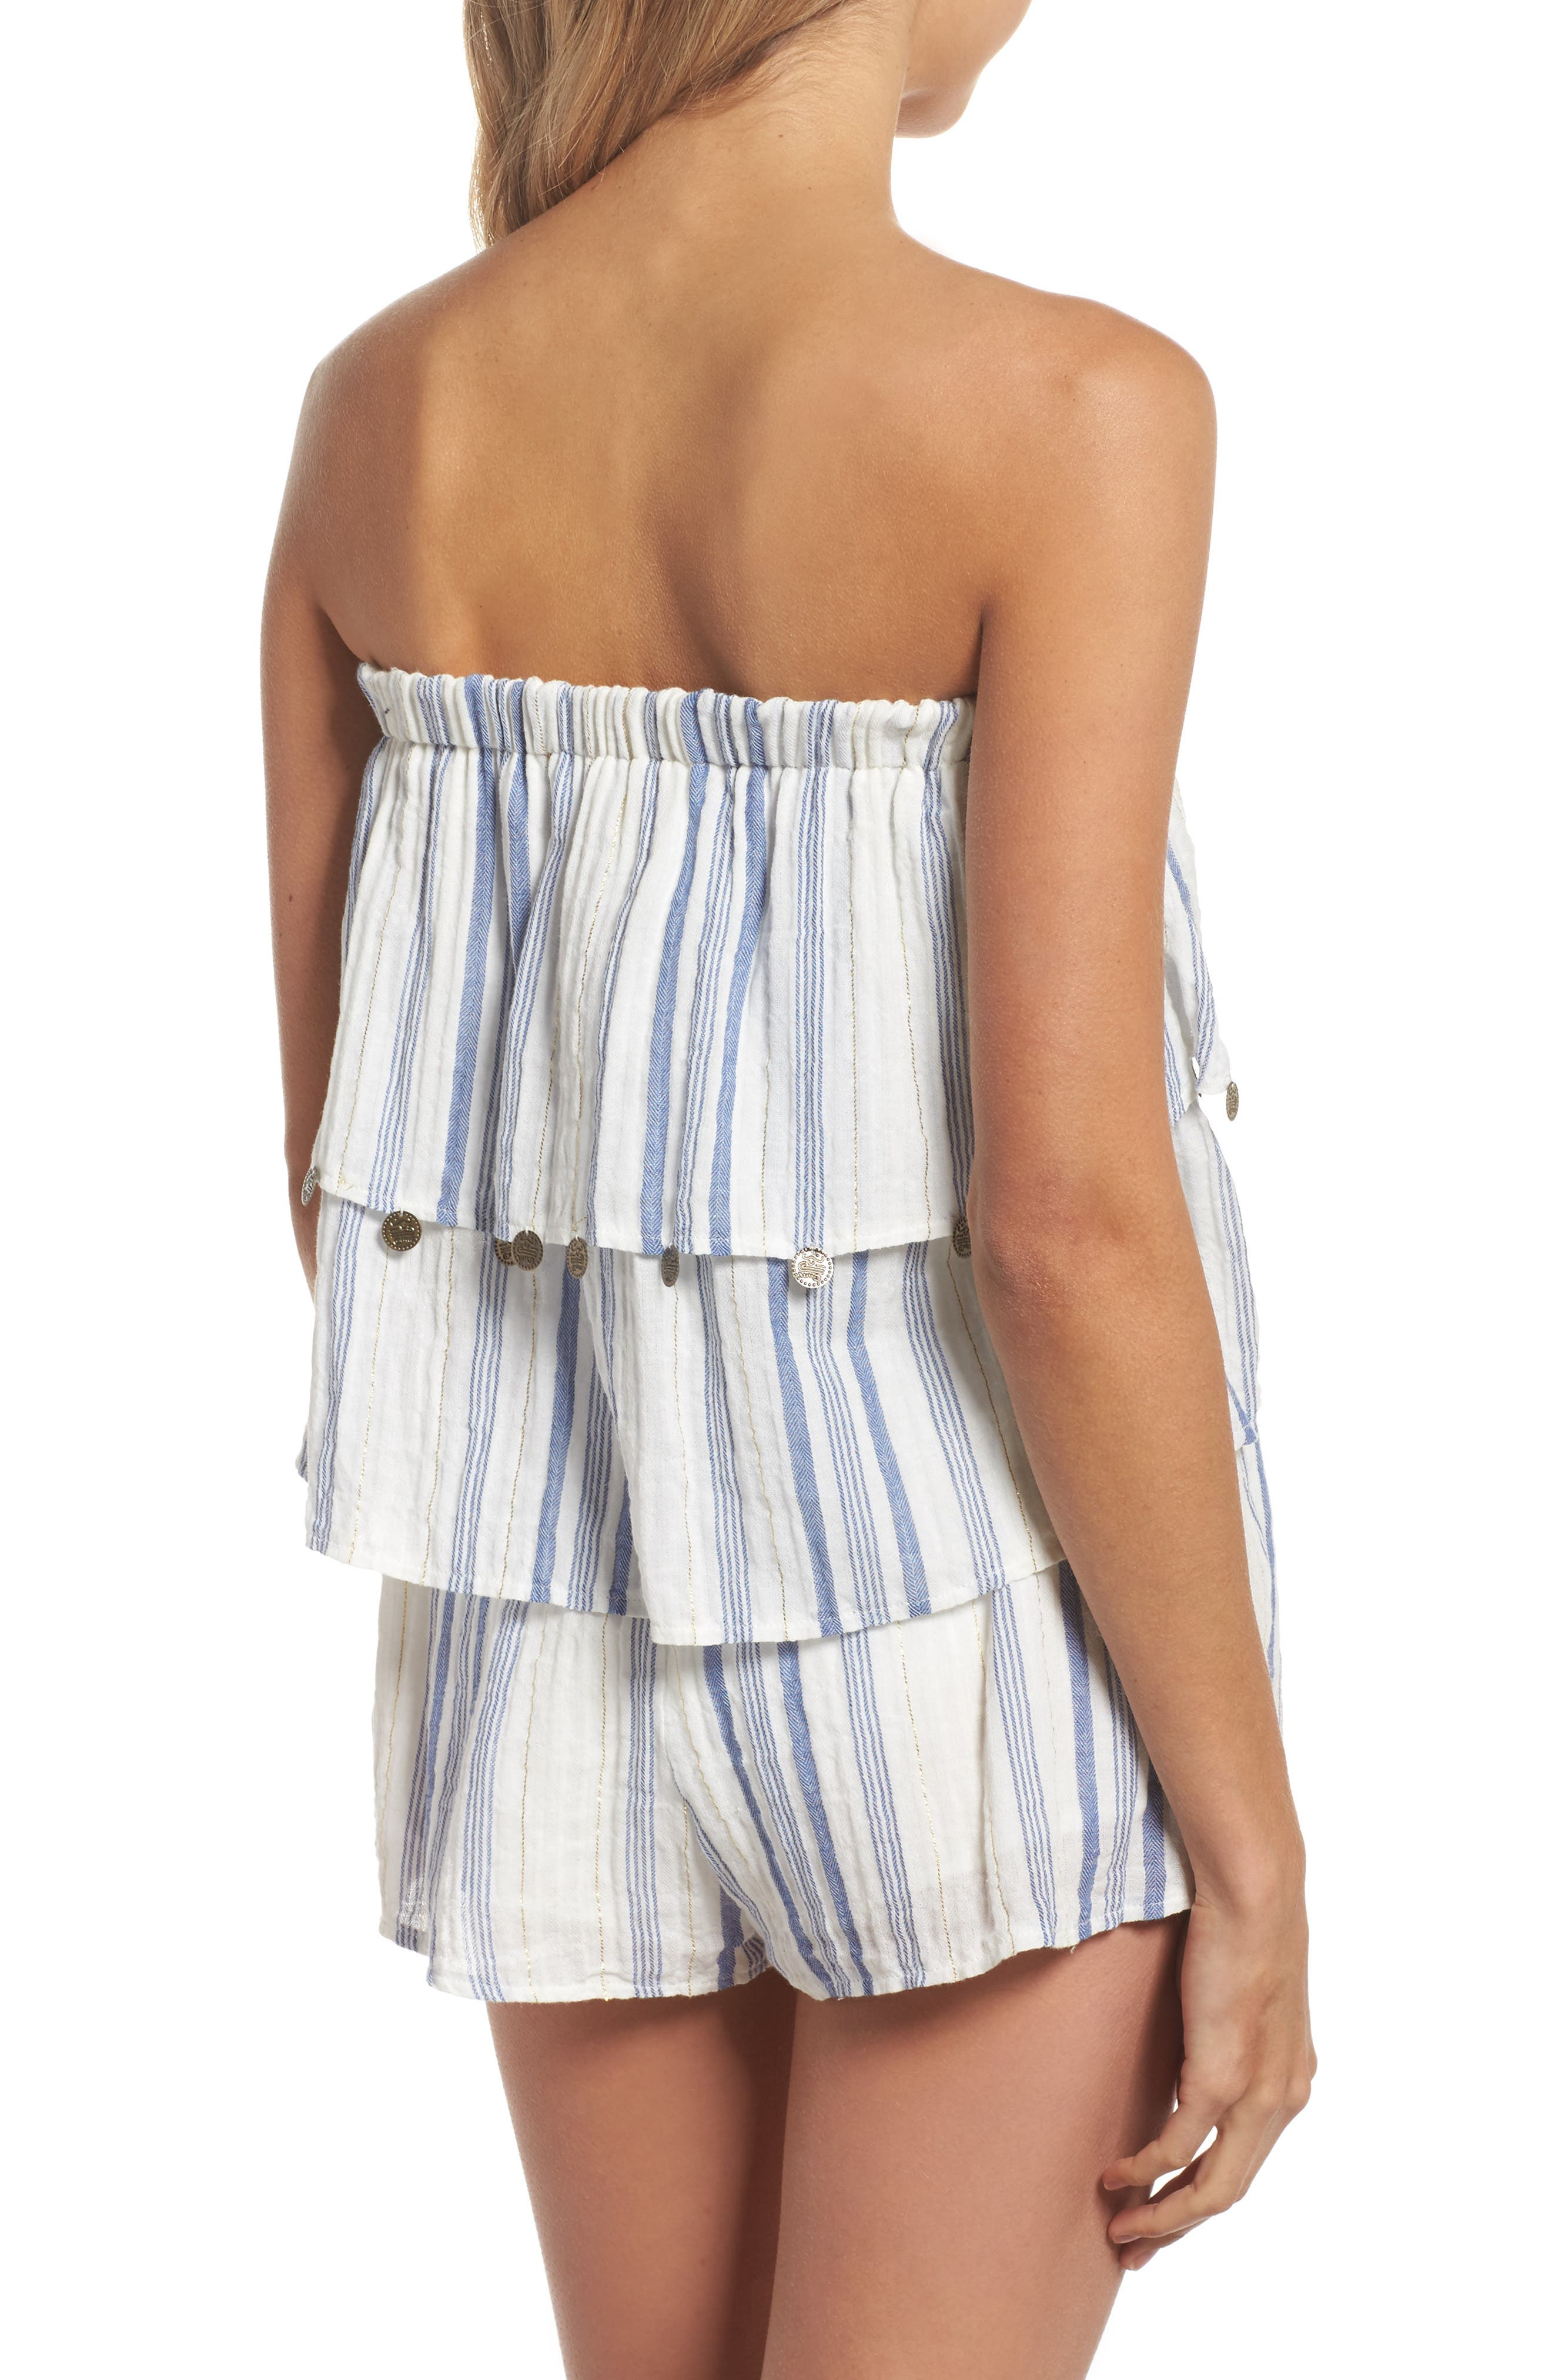 Alternate Image 2  - Surf Gypsy Bali Cover-Up Romper